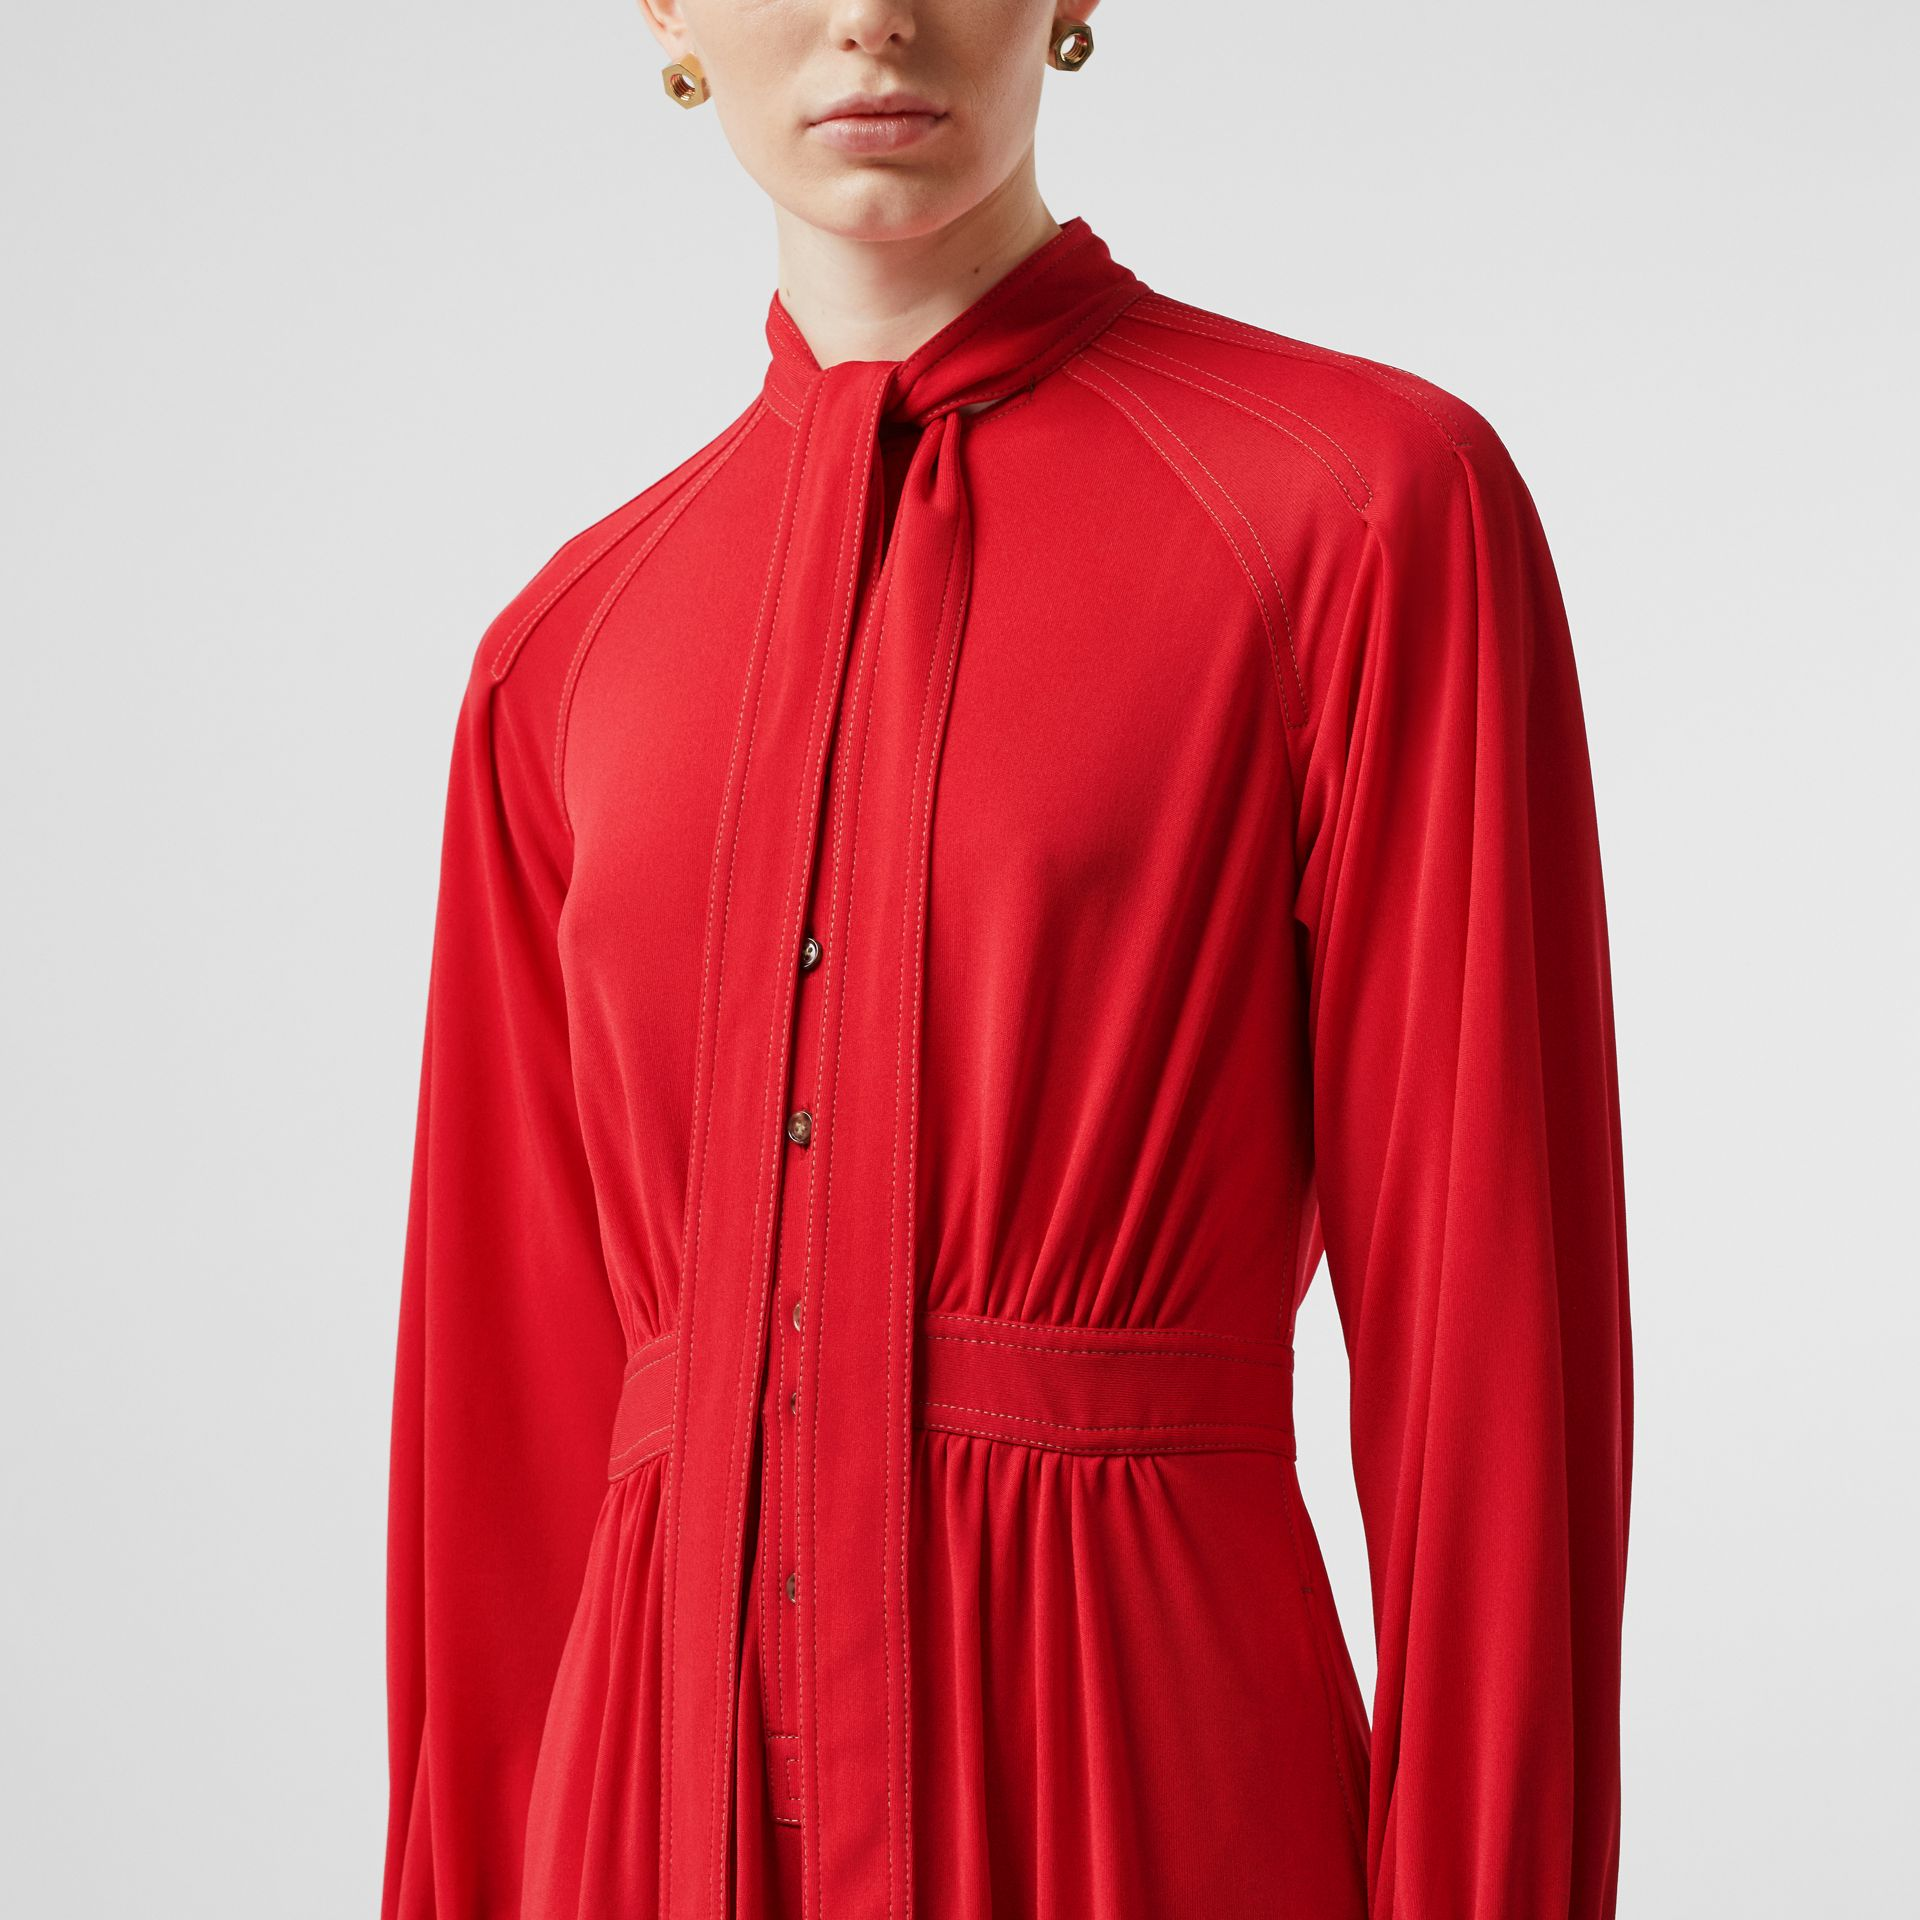 Topstitch Detail Jersey Tie-neck Dress in Bright Red - Women | Burberry Singapore - gallery image 4